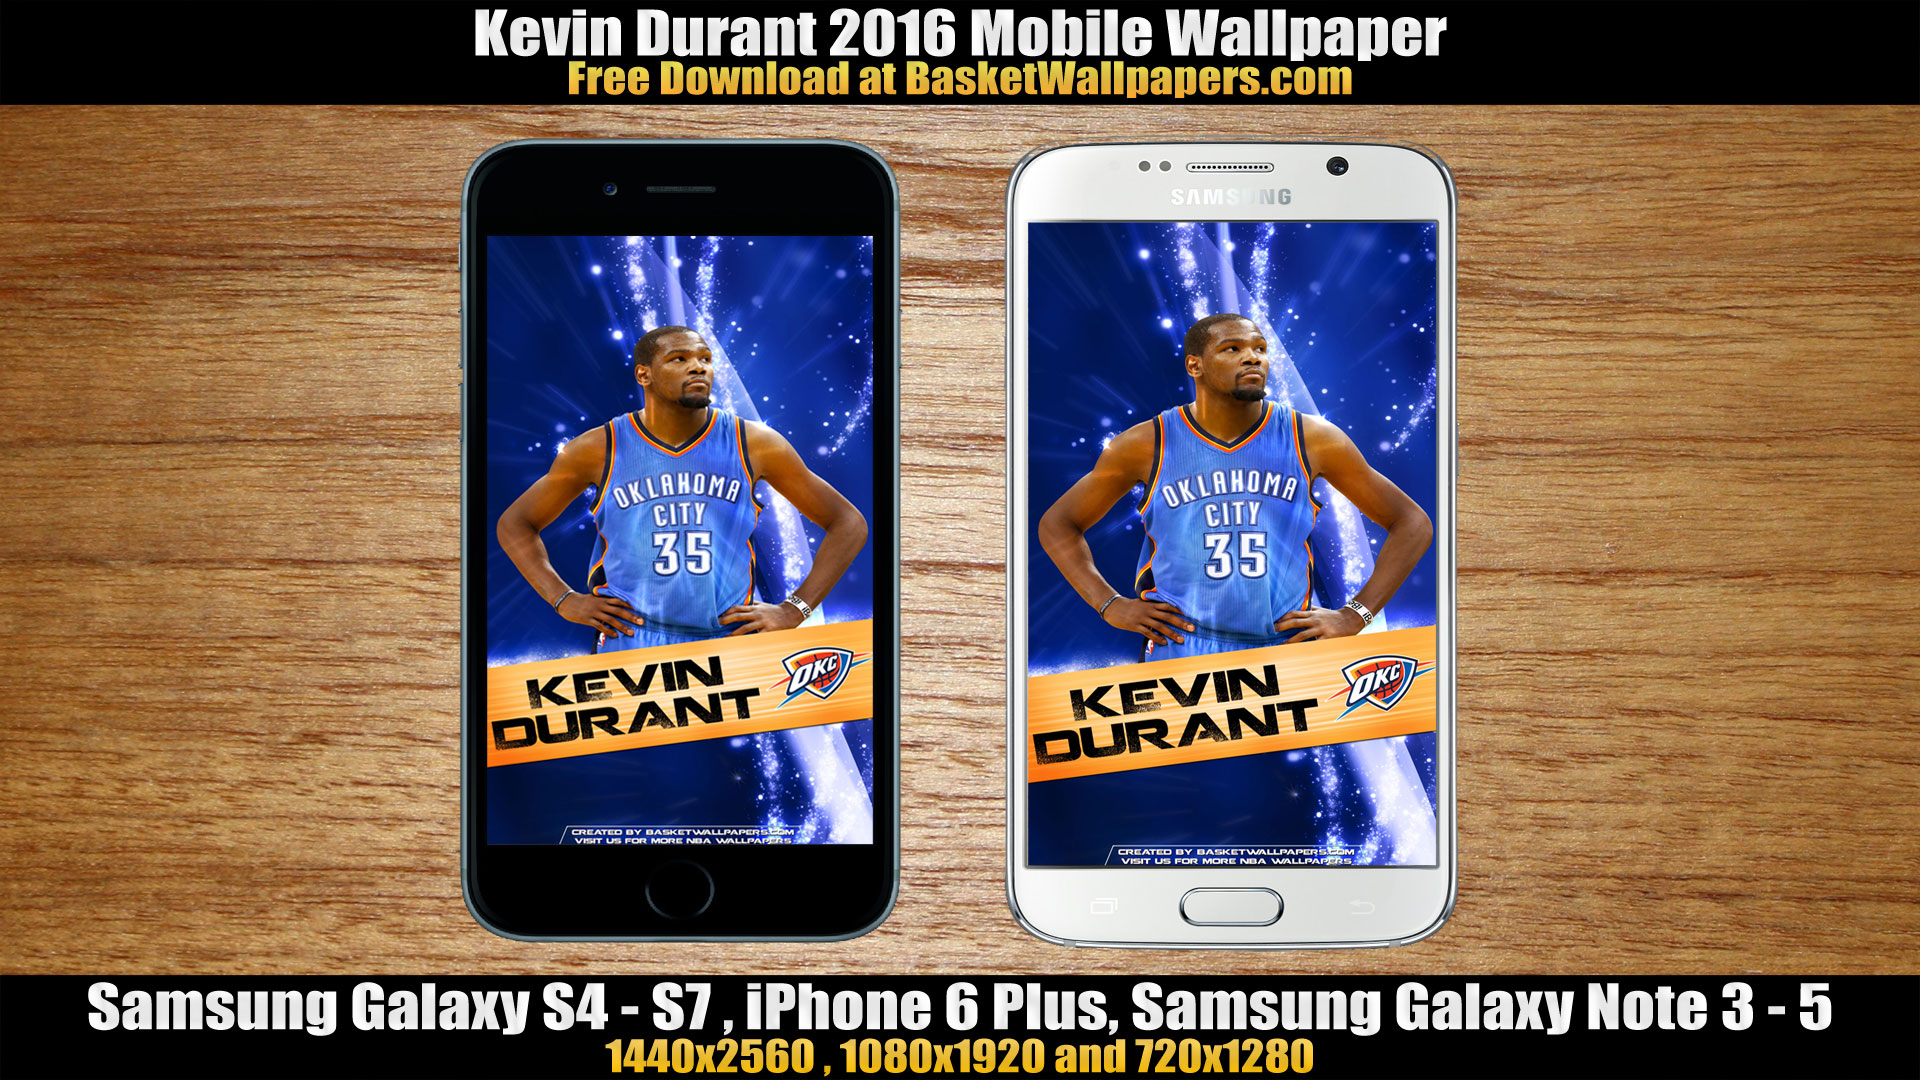 Kevin Durant OKC Thunder 2016 Mobile Wallpaper